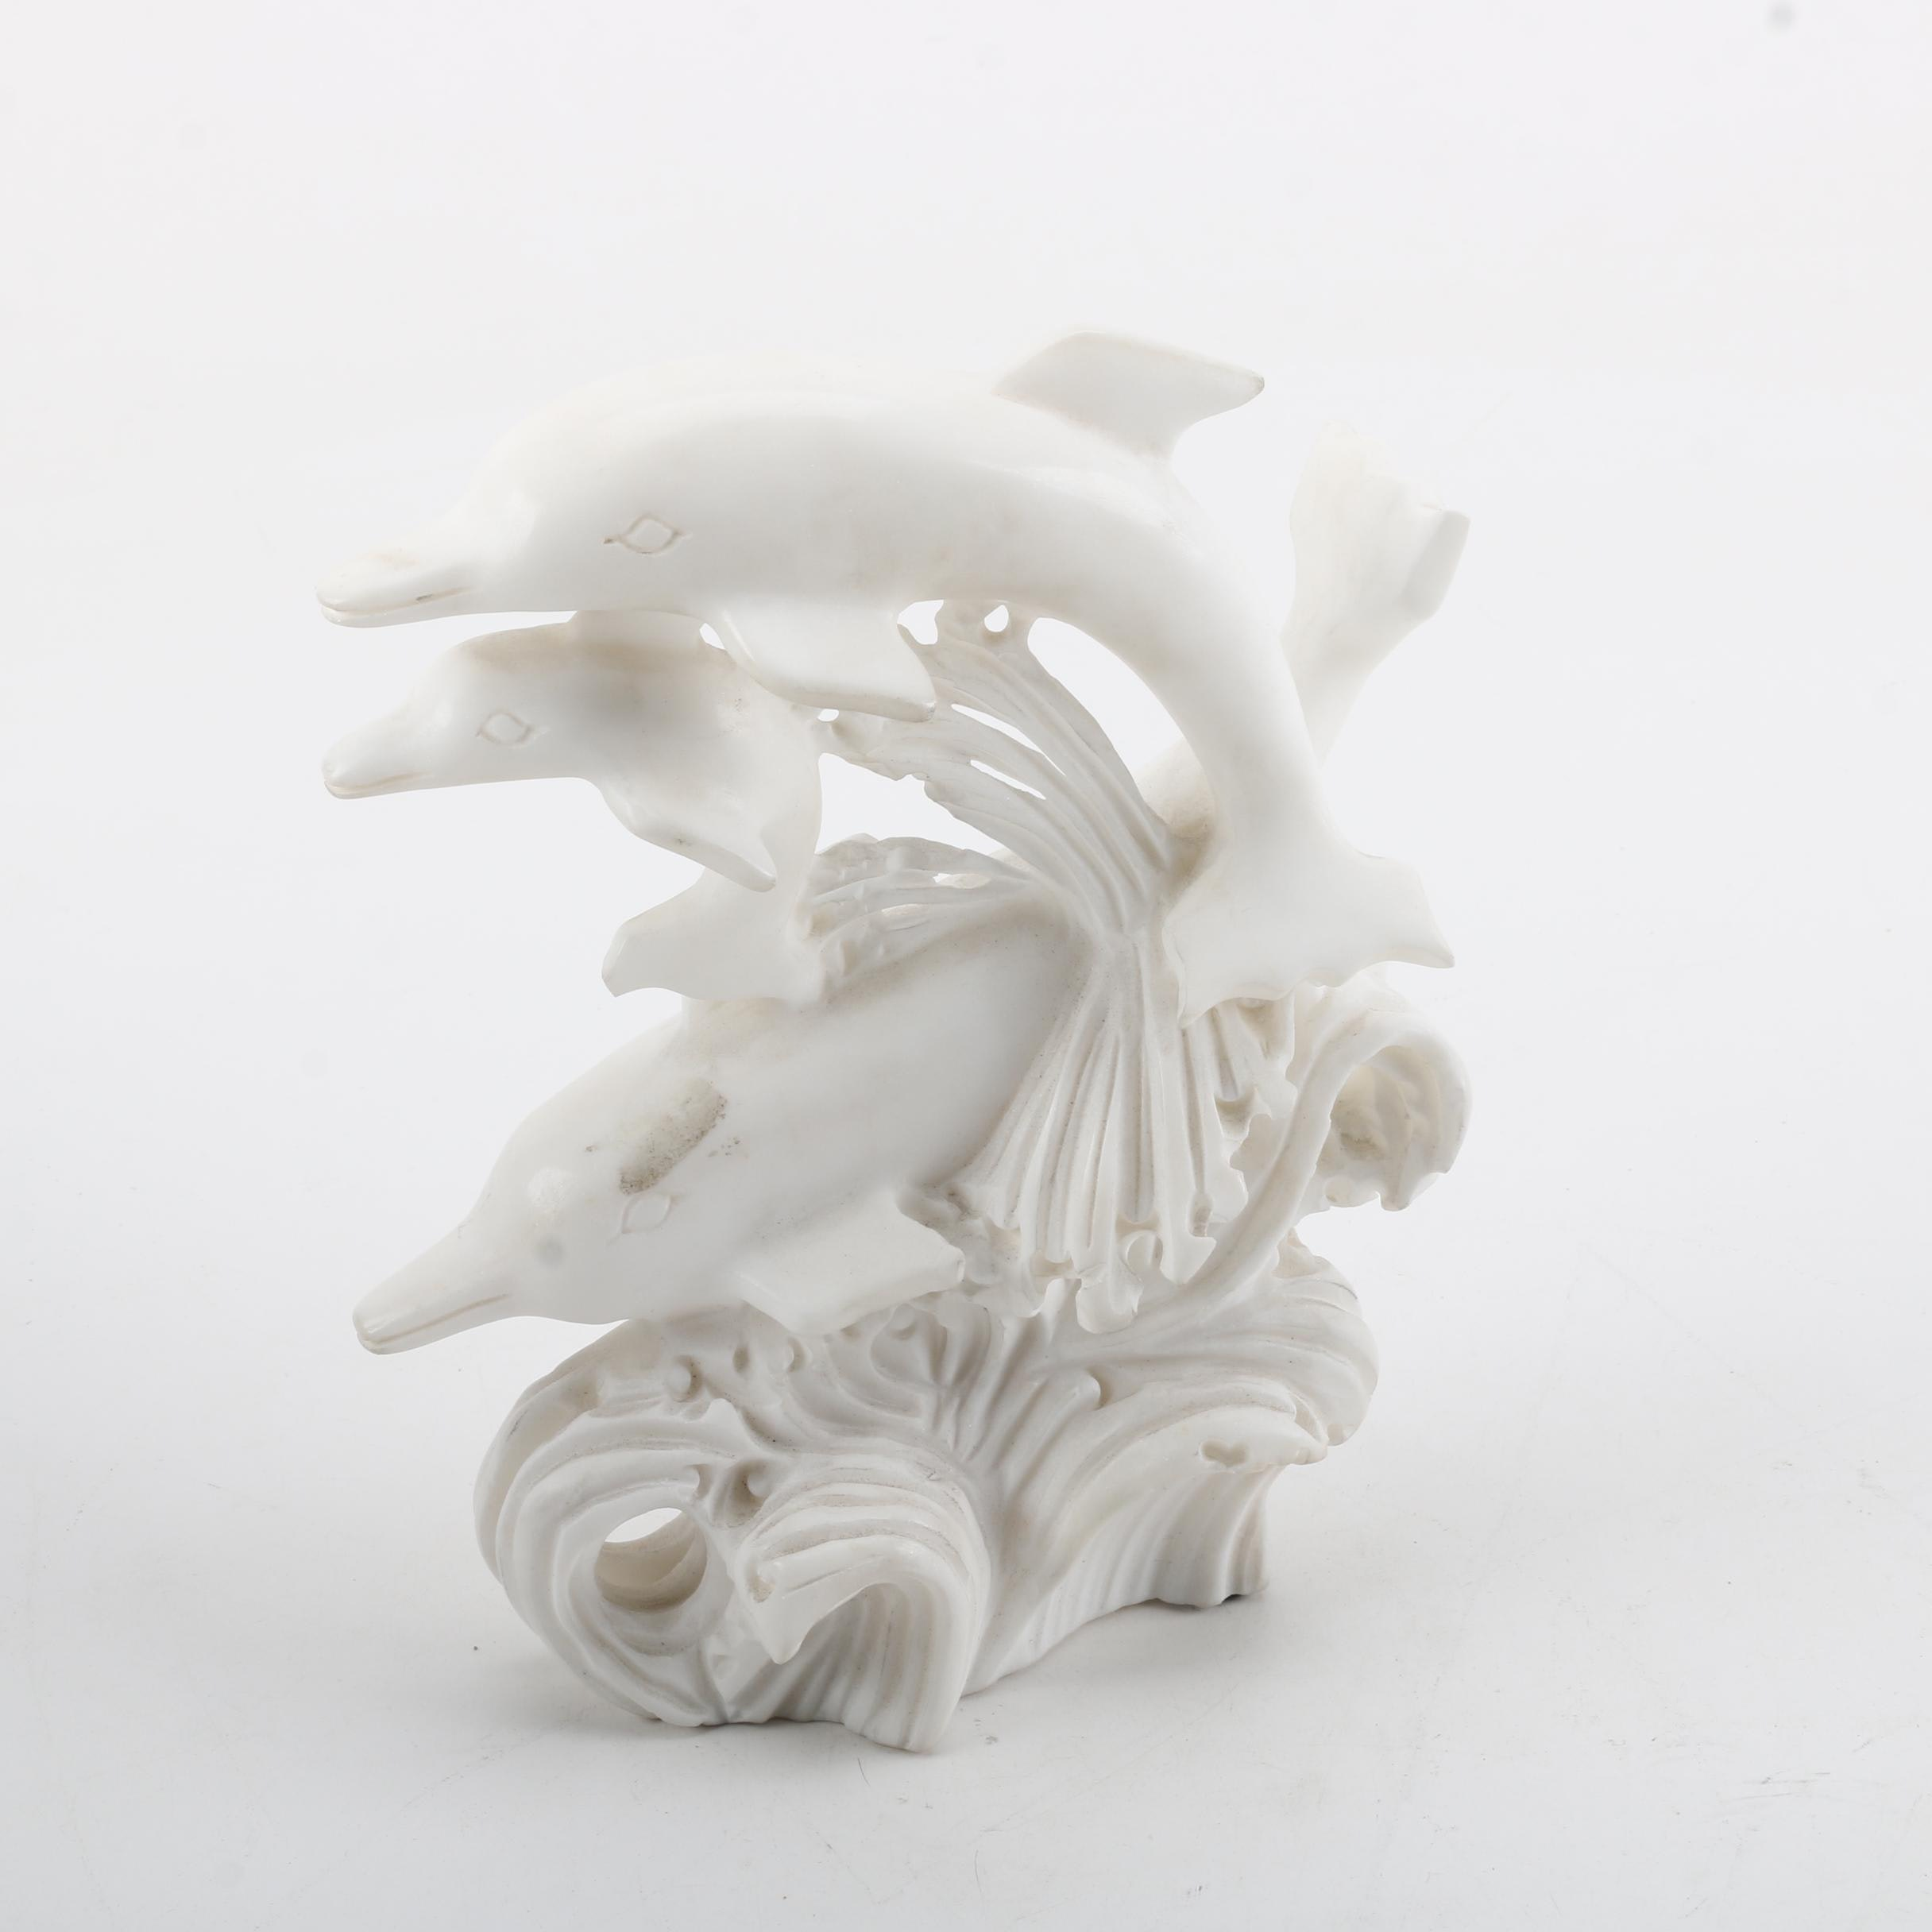 Carved Marble Dolphin Figurine